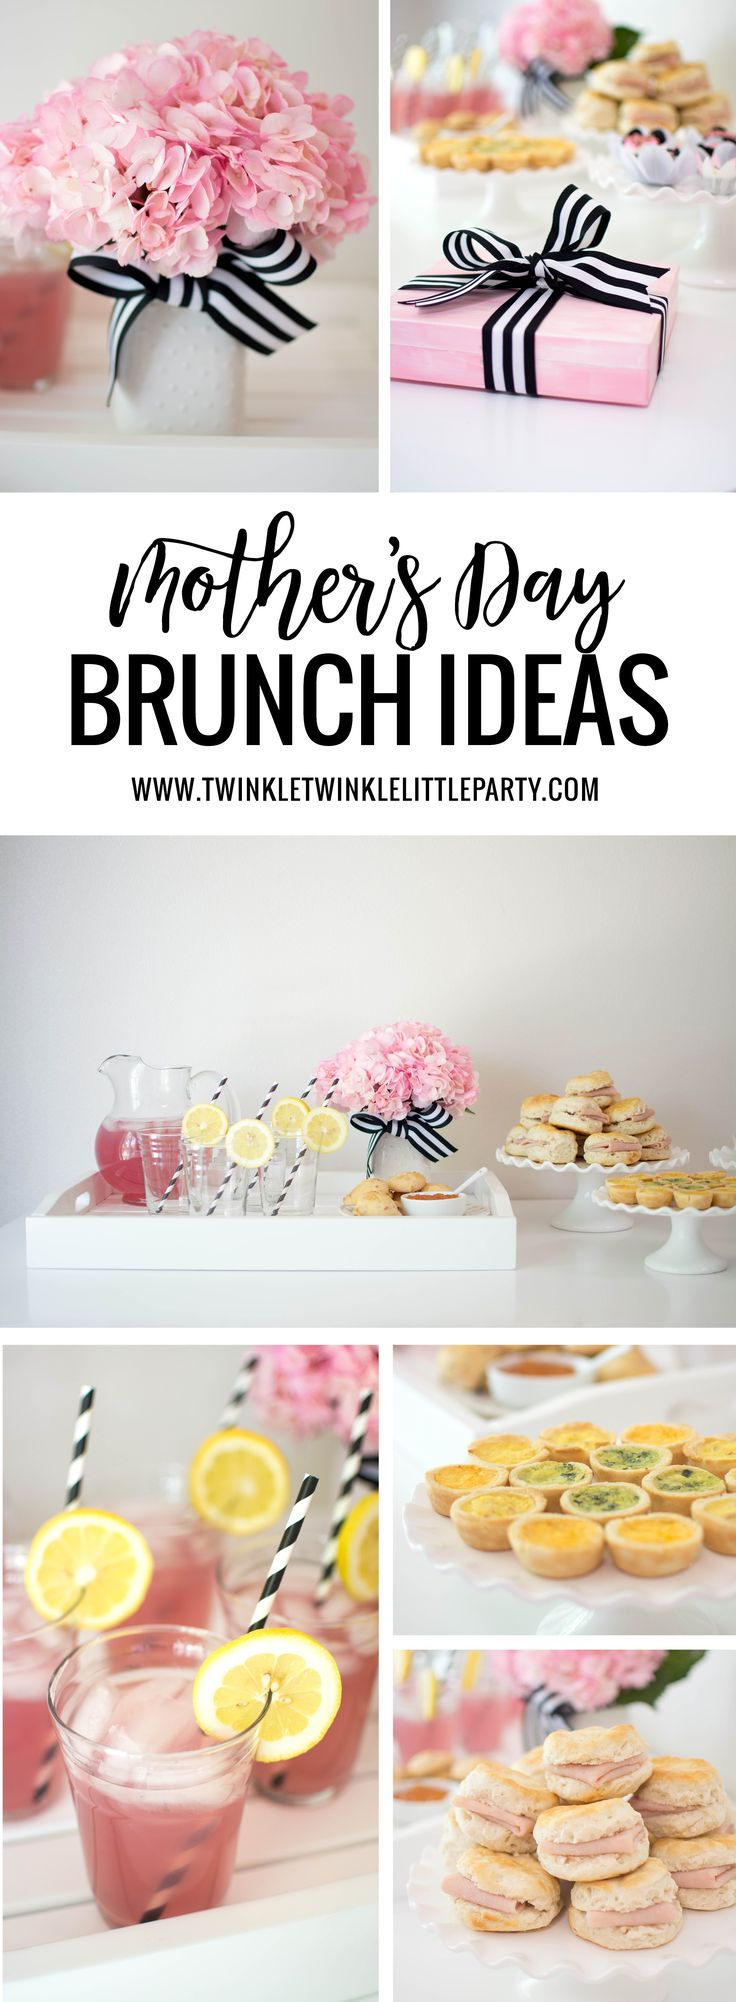 Mother's Day Brunch Ideas + A Sweet Giveaway